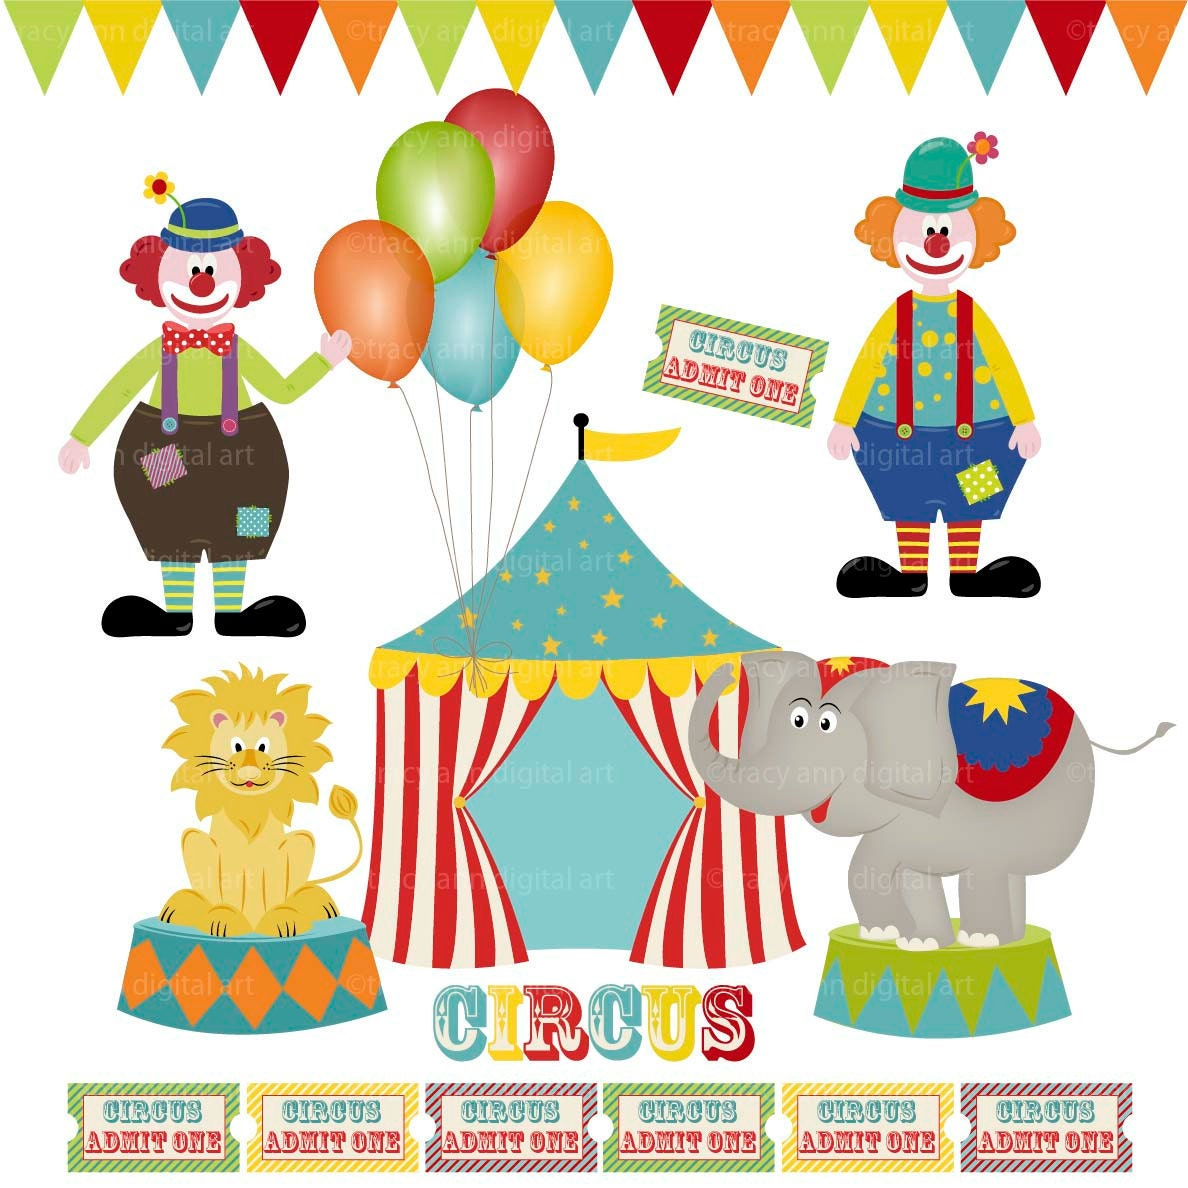 clip art clowns with balloons - photo #38